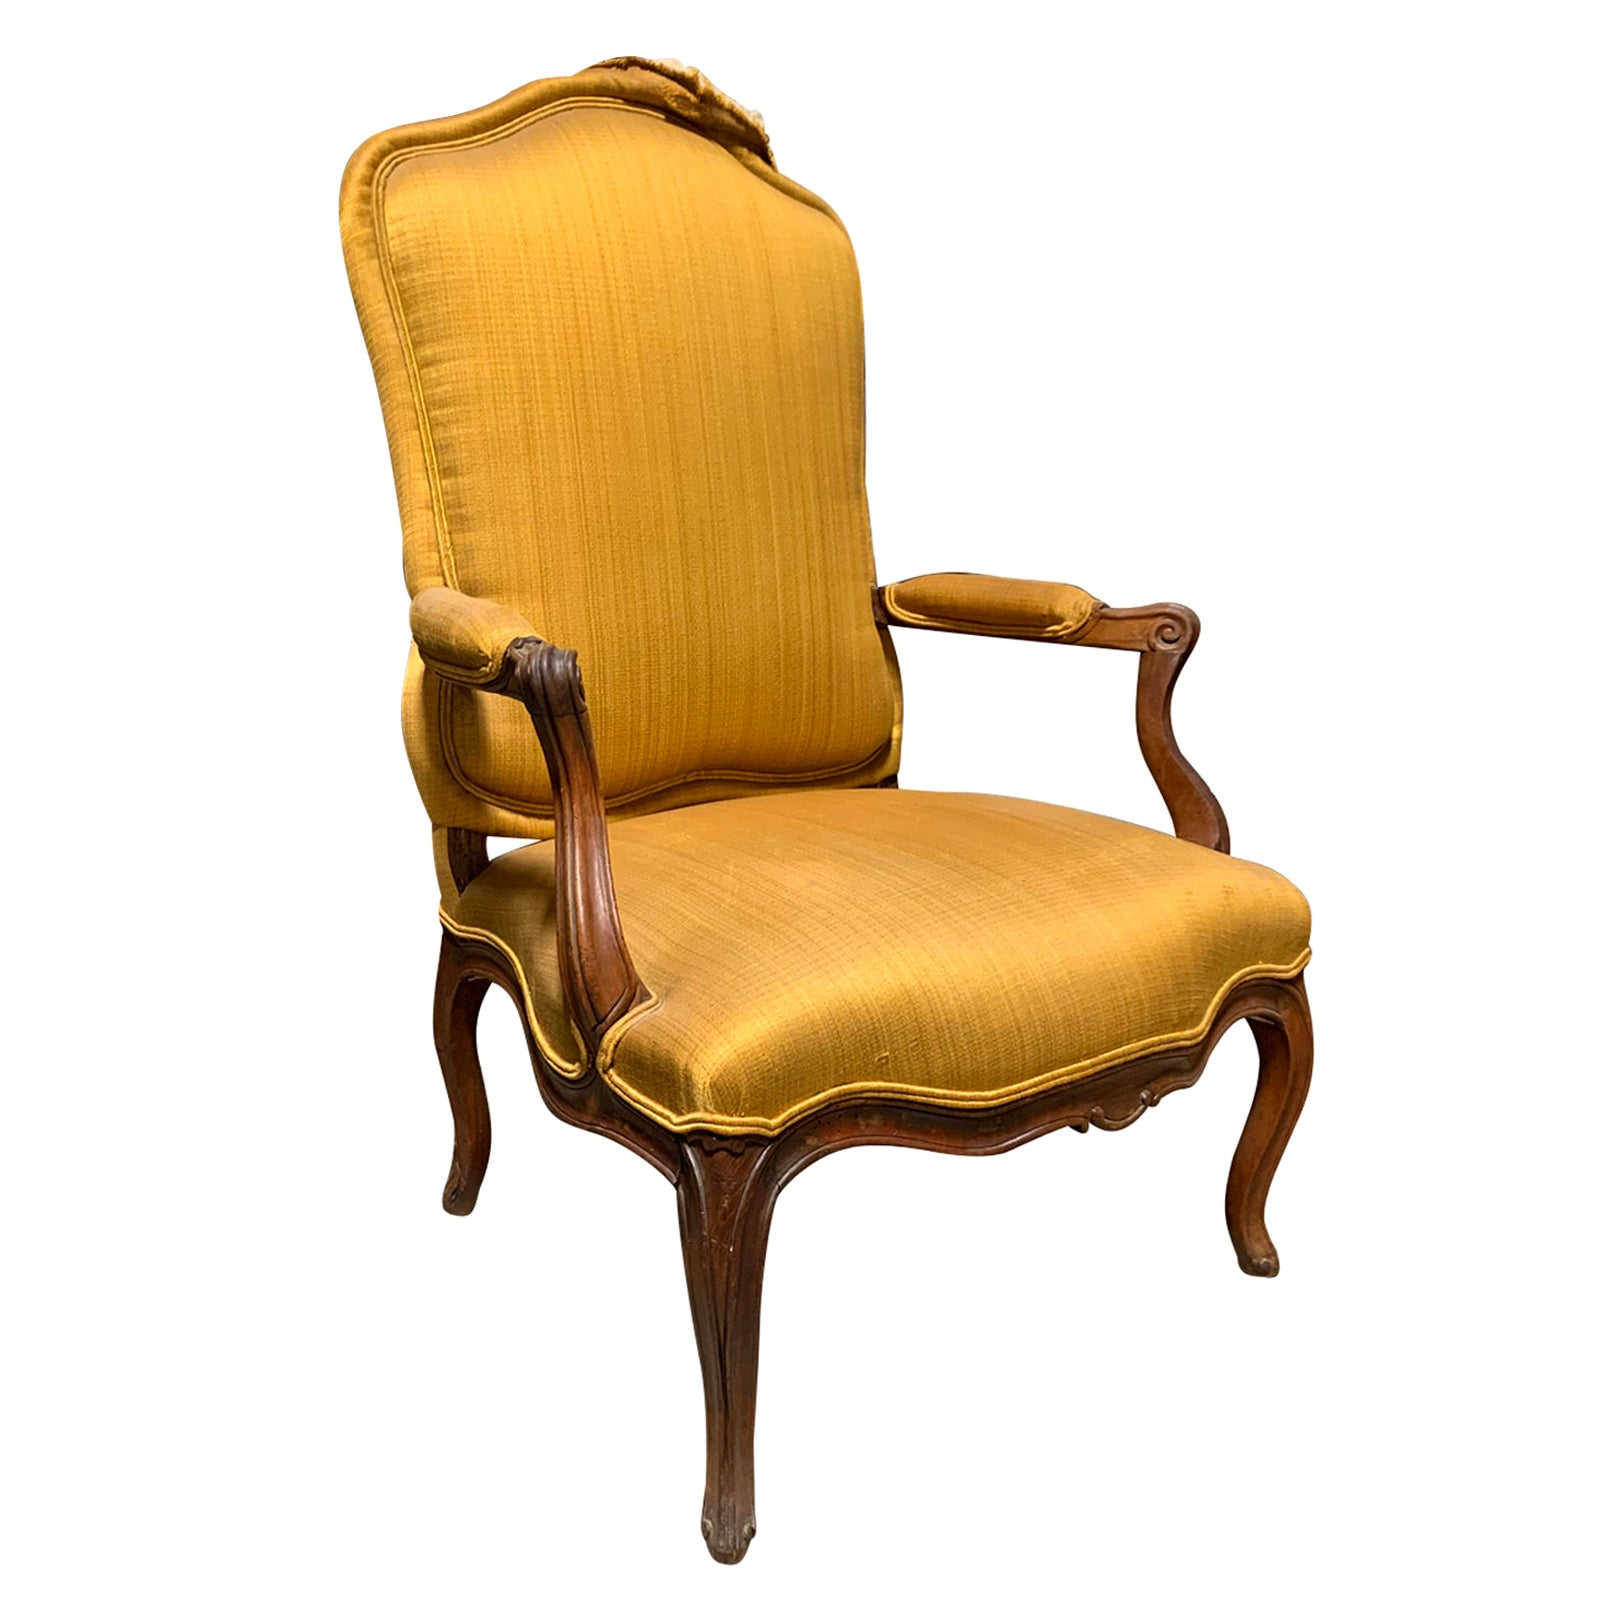 19th Century French Louis XV Style Armchair, Yellow Upholstery